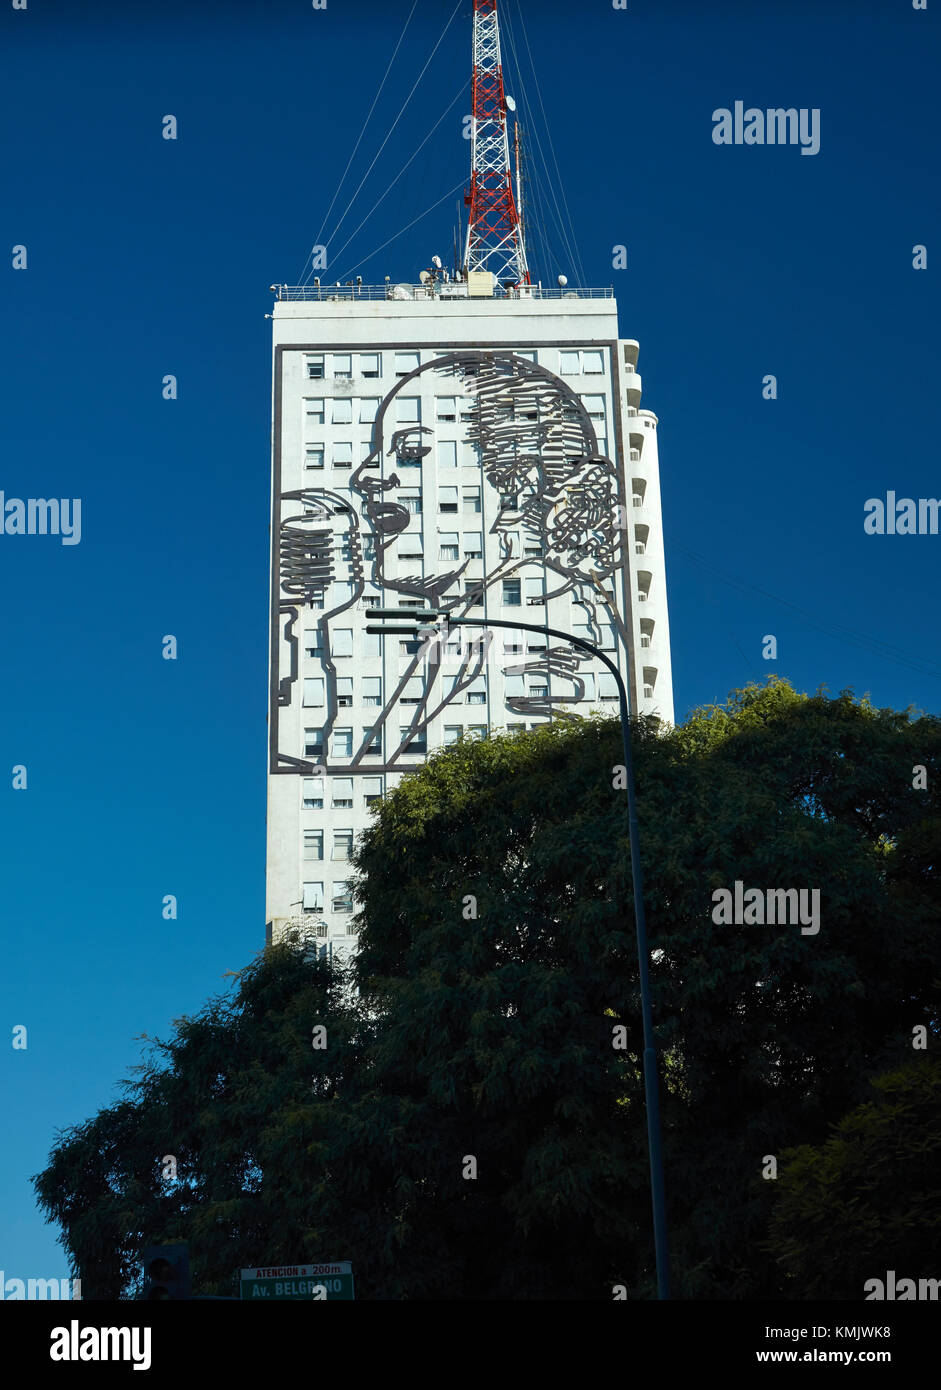 red bull consolidated offices. Giant Artwork Of Eva Peron On Side Office Building, Buenos Aires, Argentina, Red Bull Consolidated Offices E